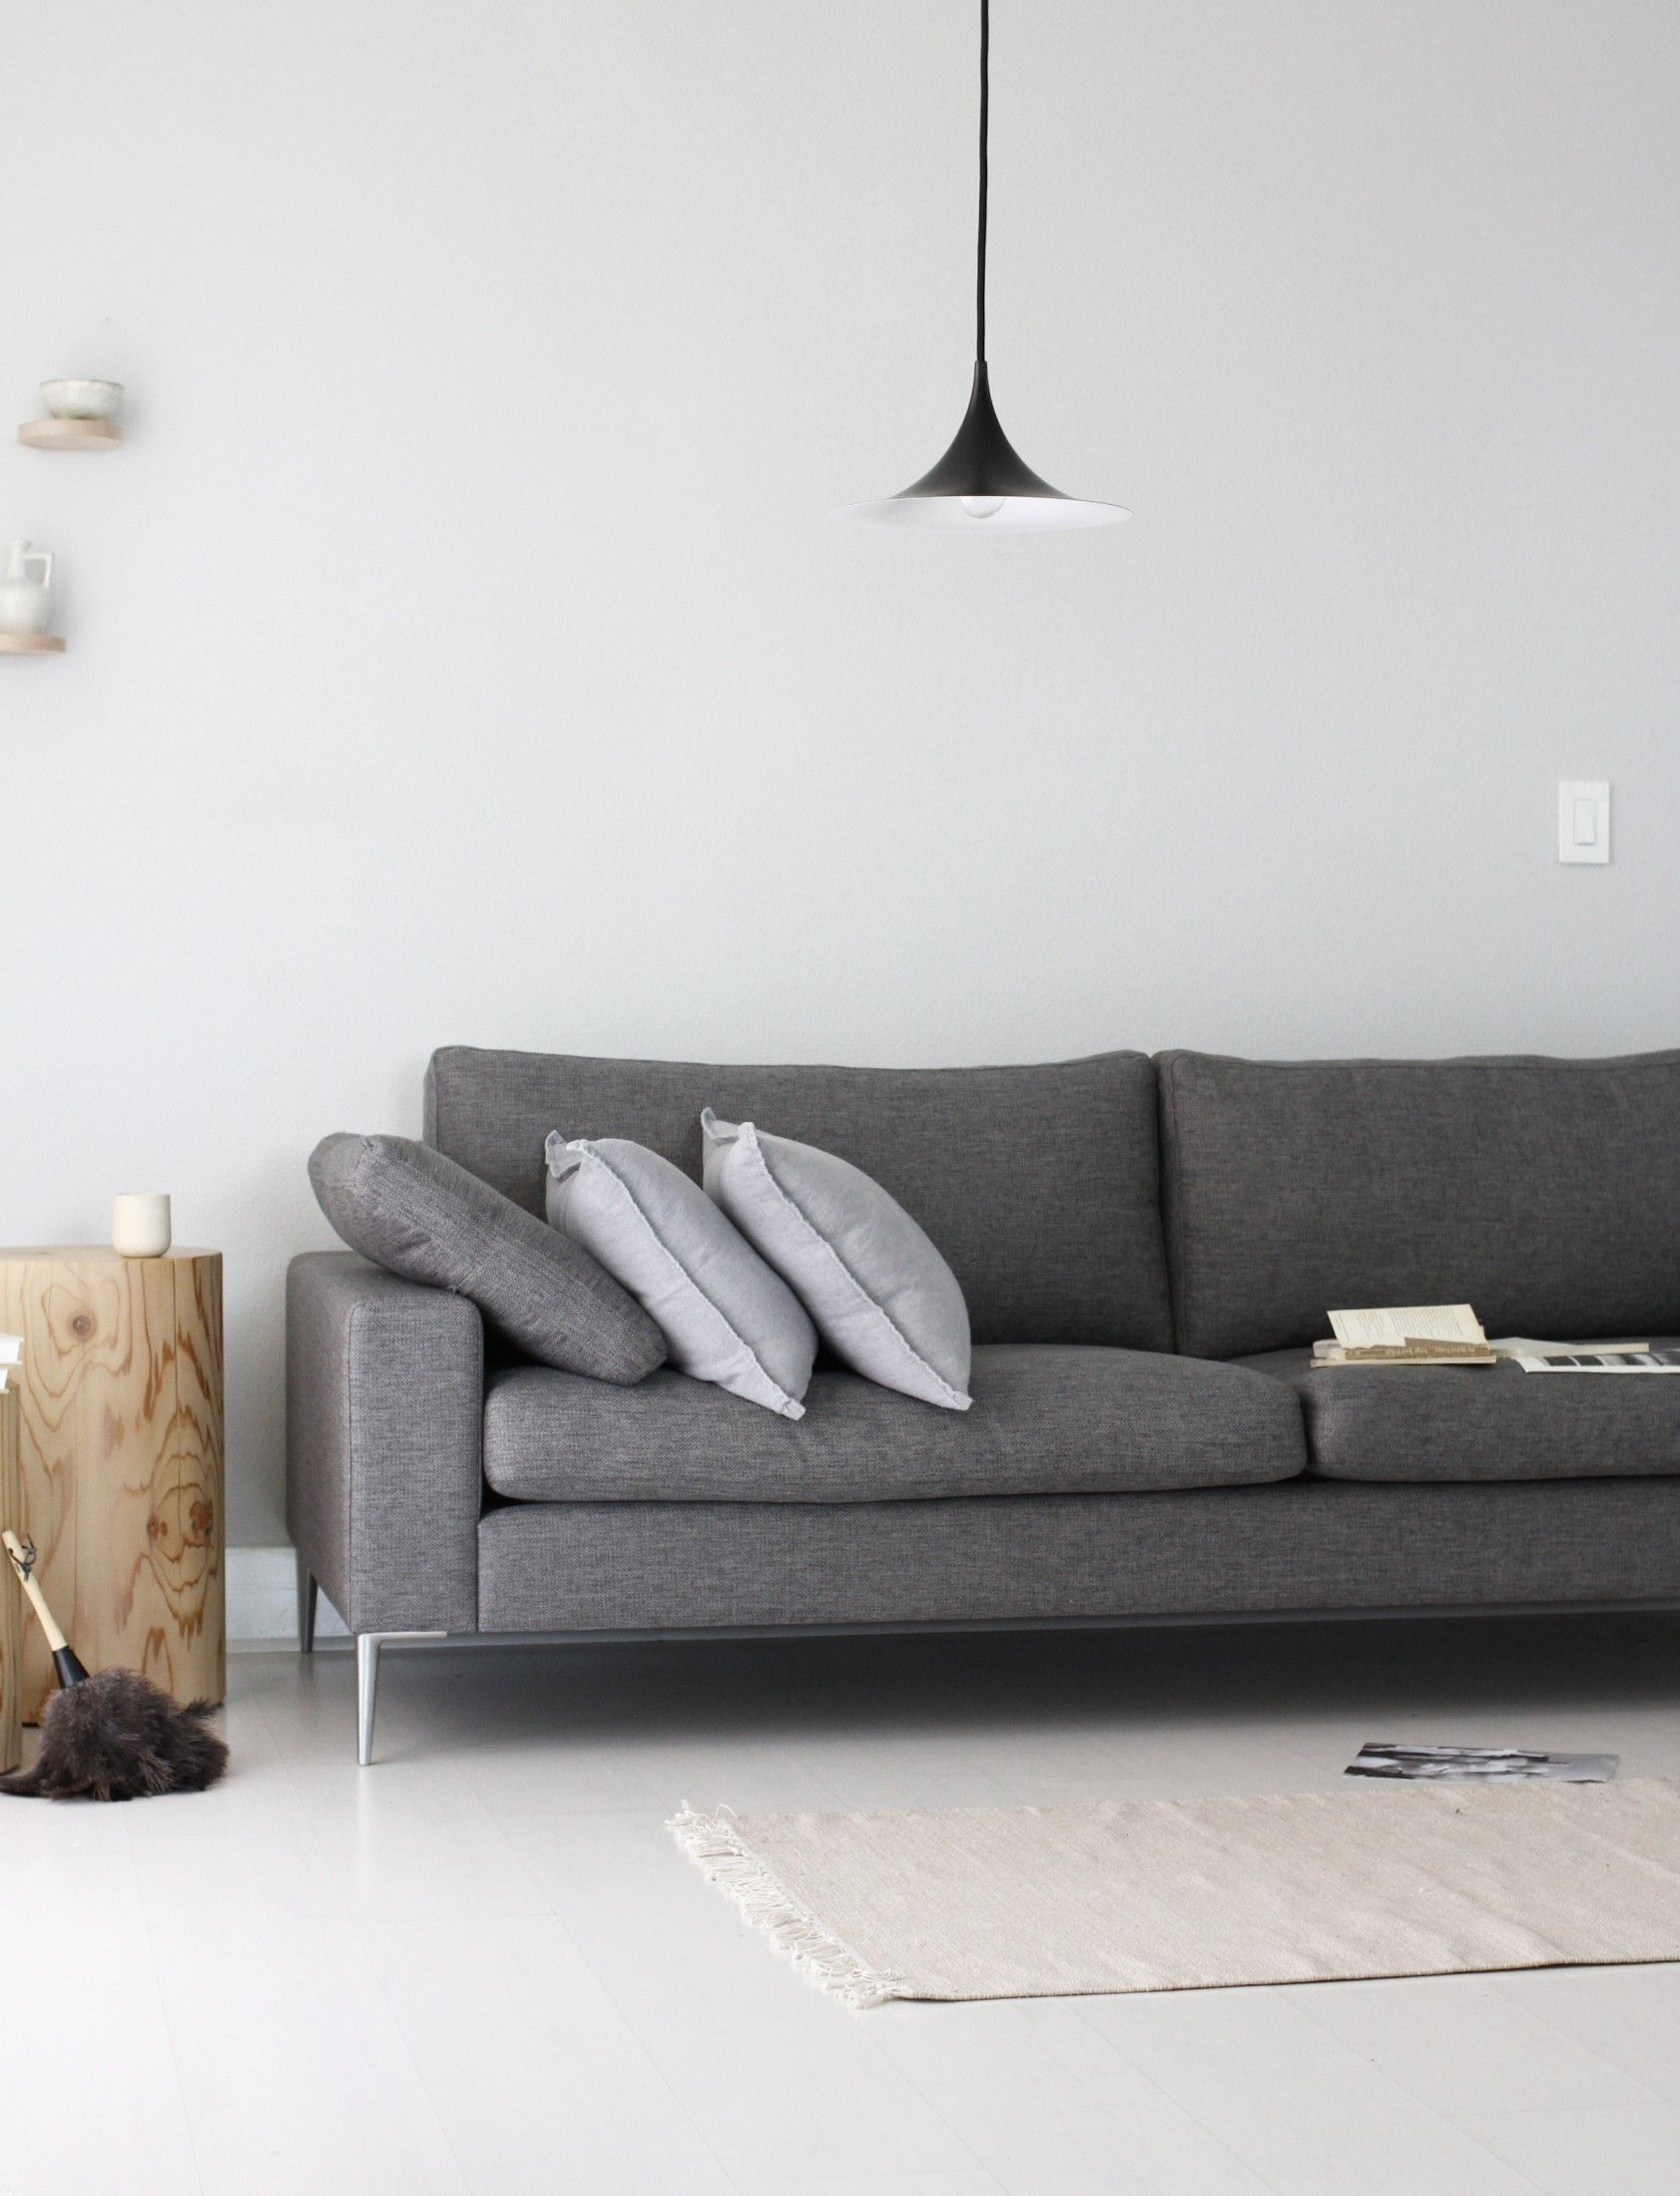 Gray 3 Seat Sofa With Metal Legs Upholstered Article Nova Modern